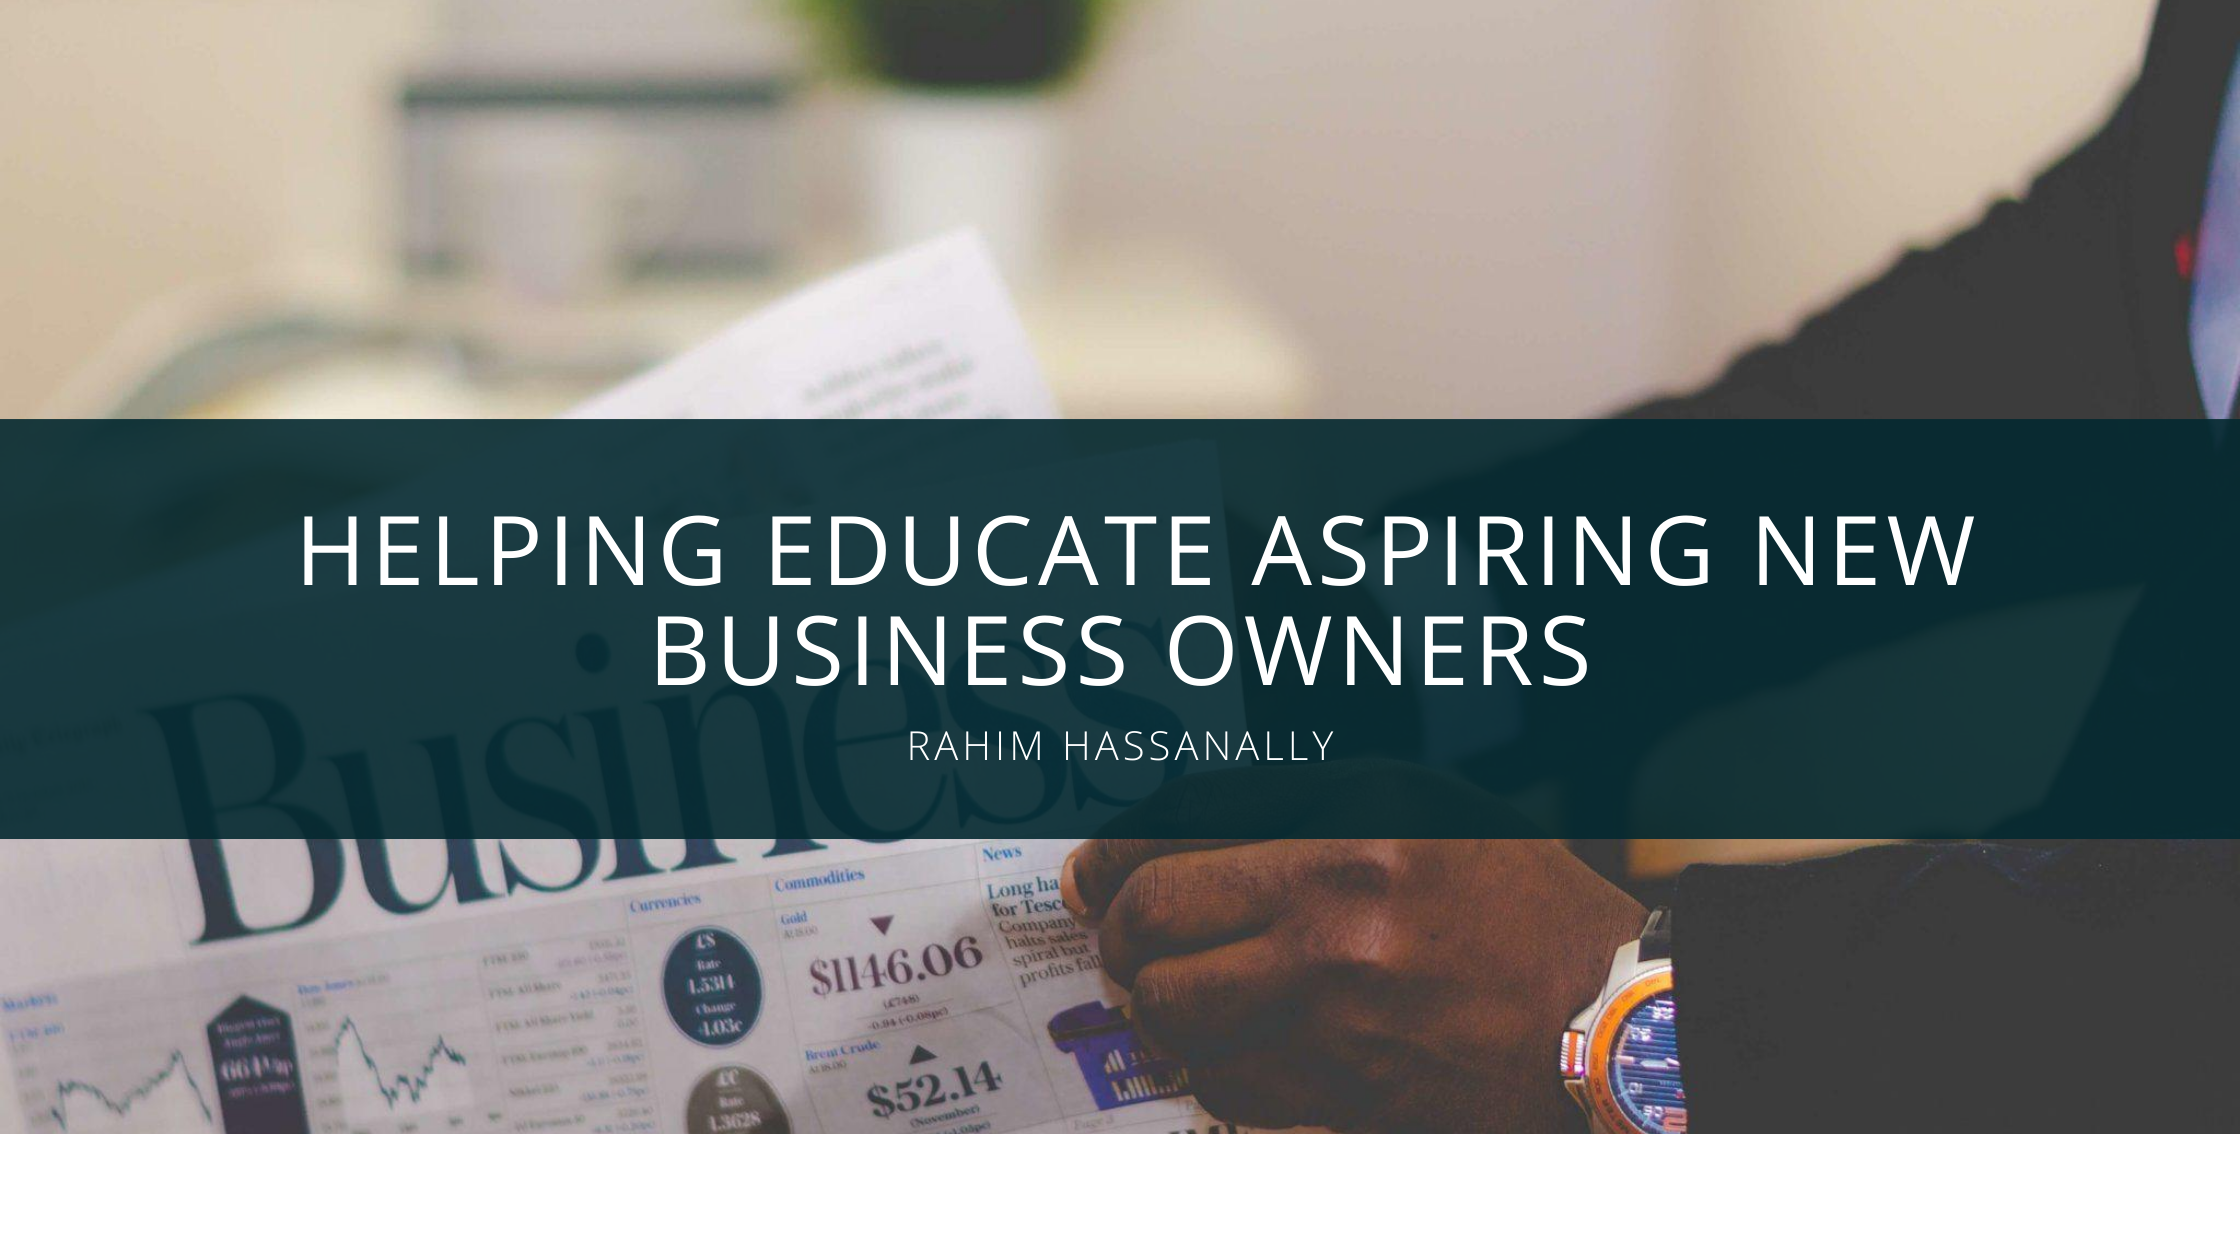 Rahim Hassanally proud to help educate aspiring new business owners